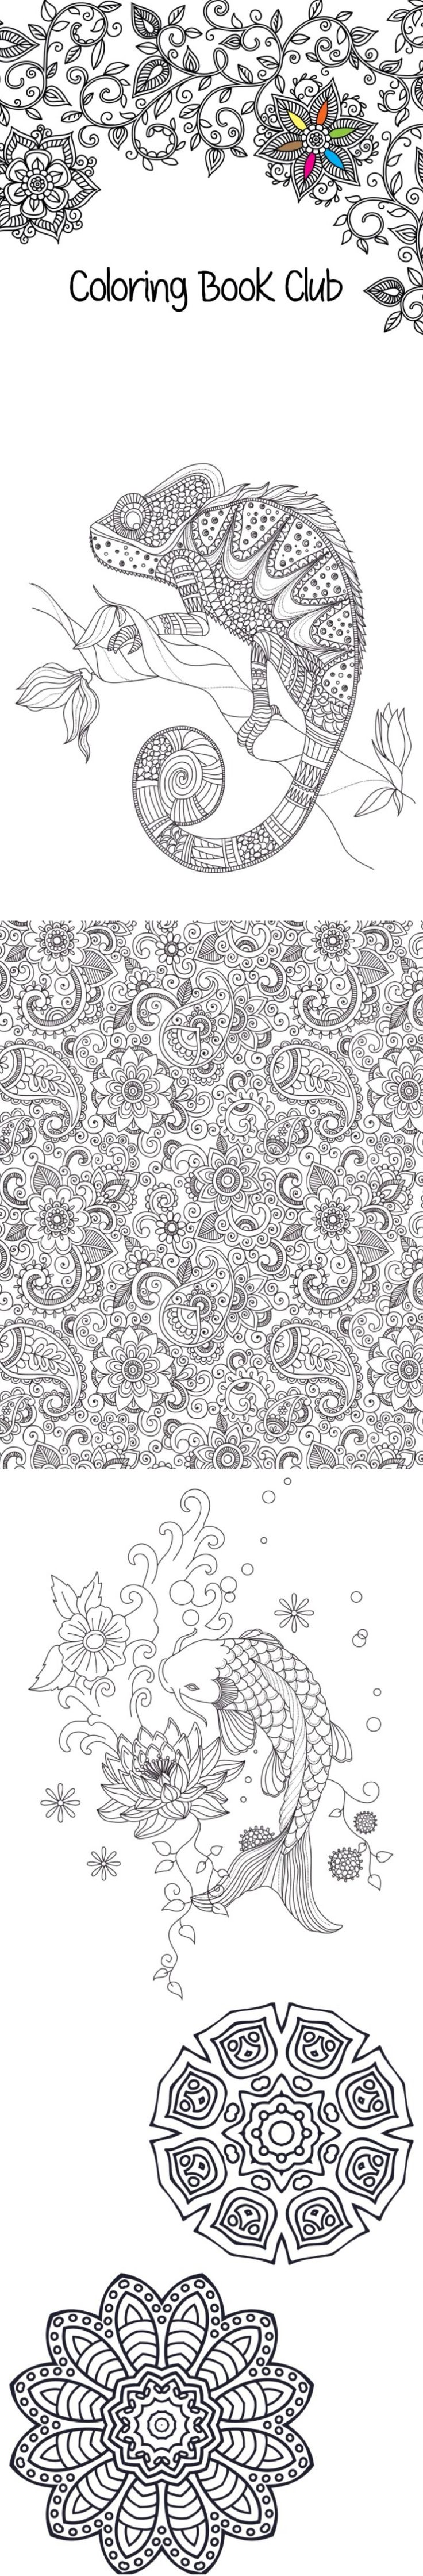 online japanese shopping mall Coloring sheets perfect as a stress reliever  Take a break  color and enjoy  These designs are free for download